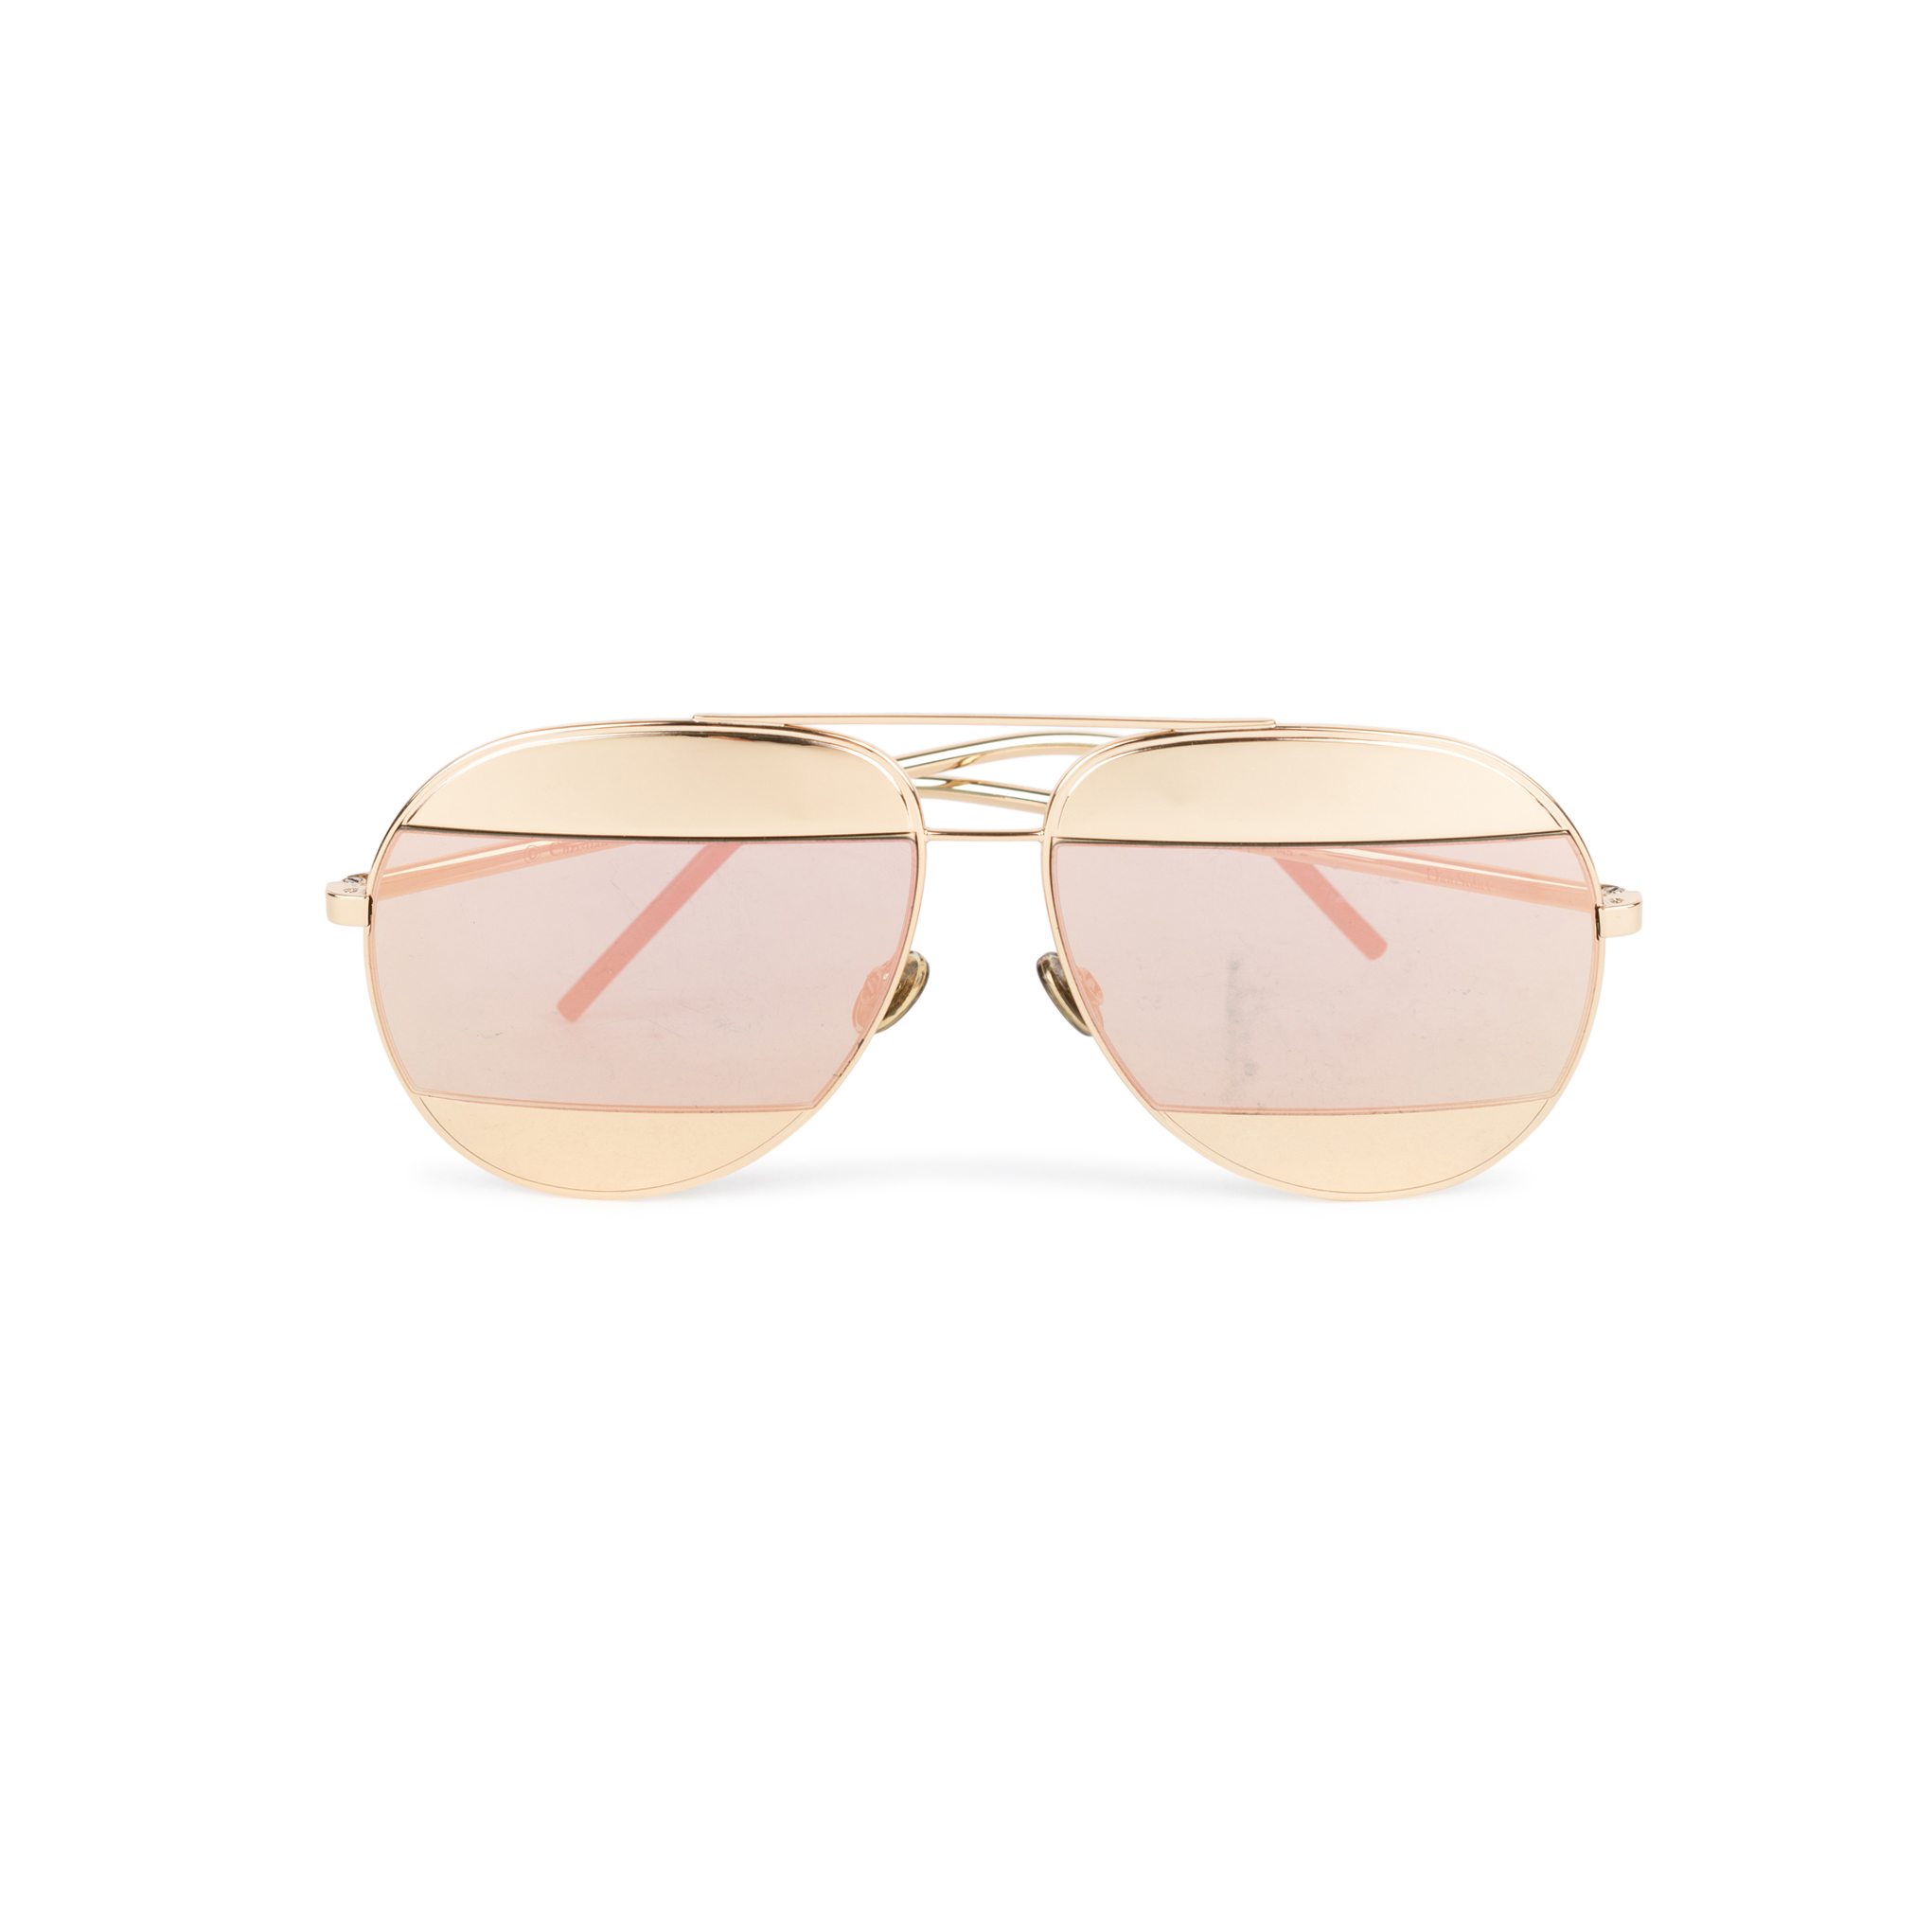 fb5d8bf15539 Authentic Second Hand Christian Dior Dior Split 1 Sunglasses  (PSS-552-00017) - THE FIFTH COLLECTION